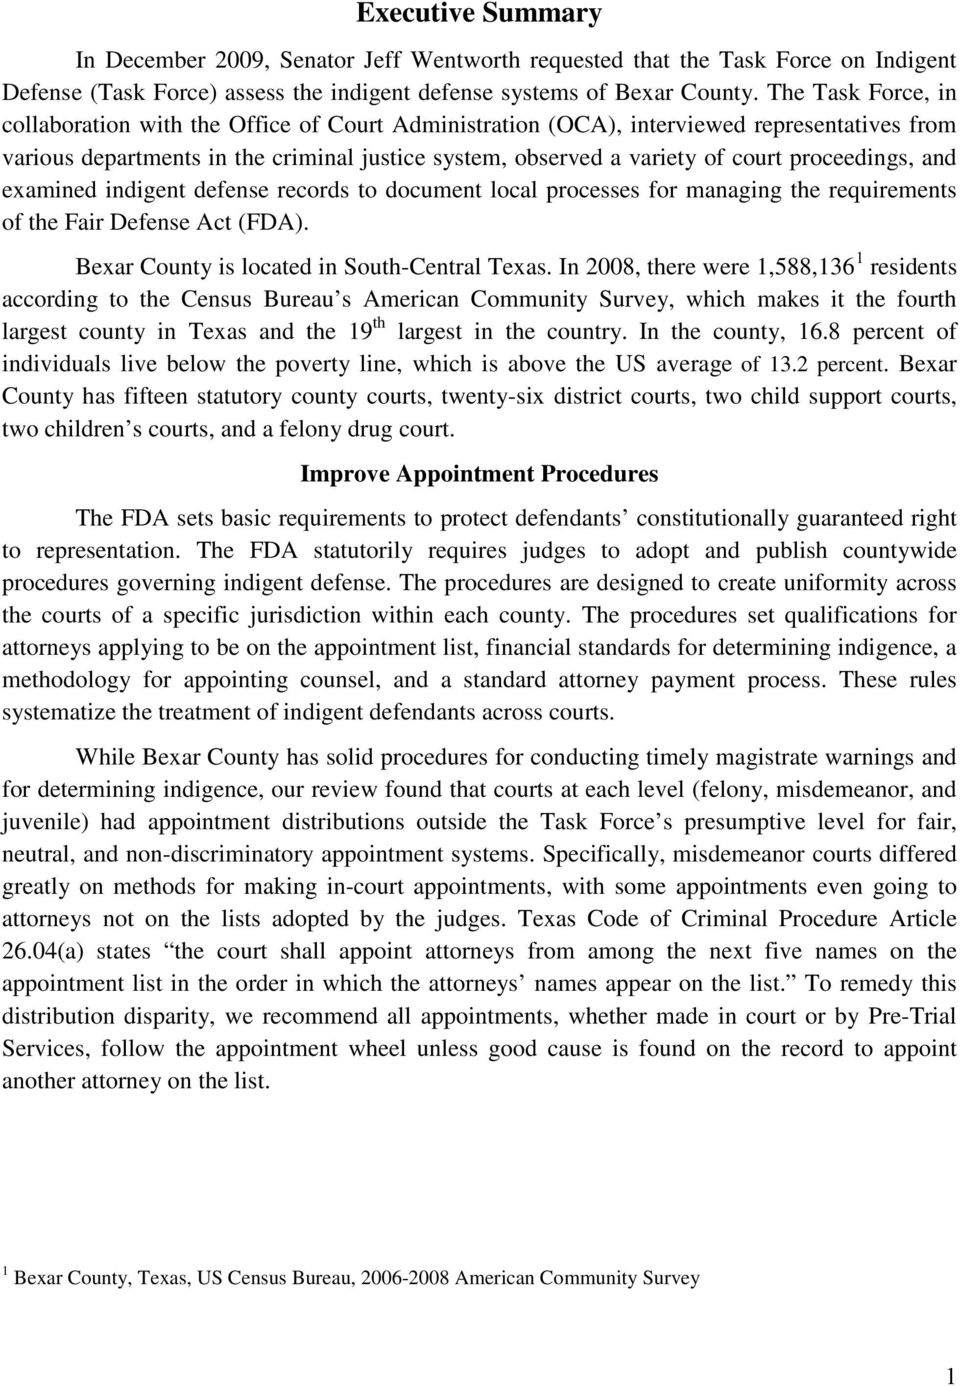 proceedings, and examined indigent defense records to document local processes for managing the requirements of the Fair Defense Act (FDA). Bexar County is located in South-Central Texas.